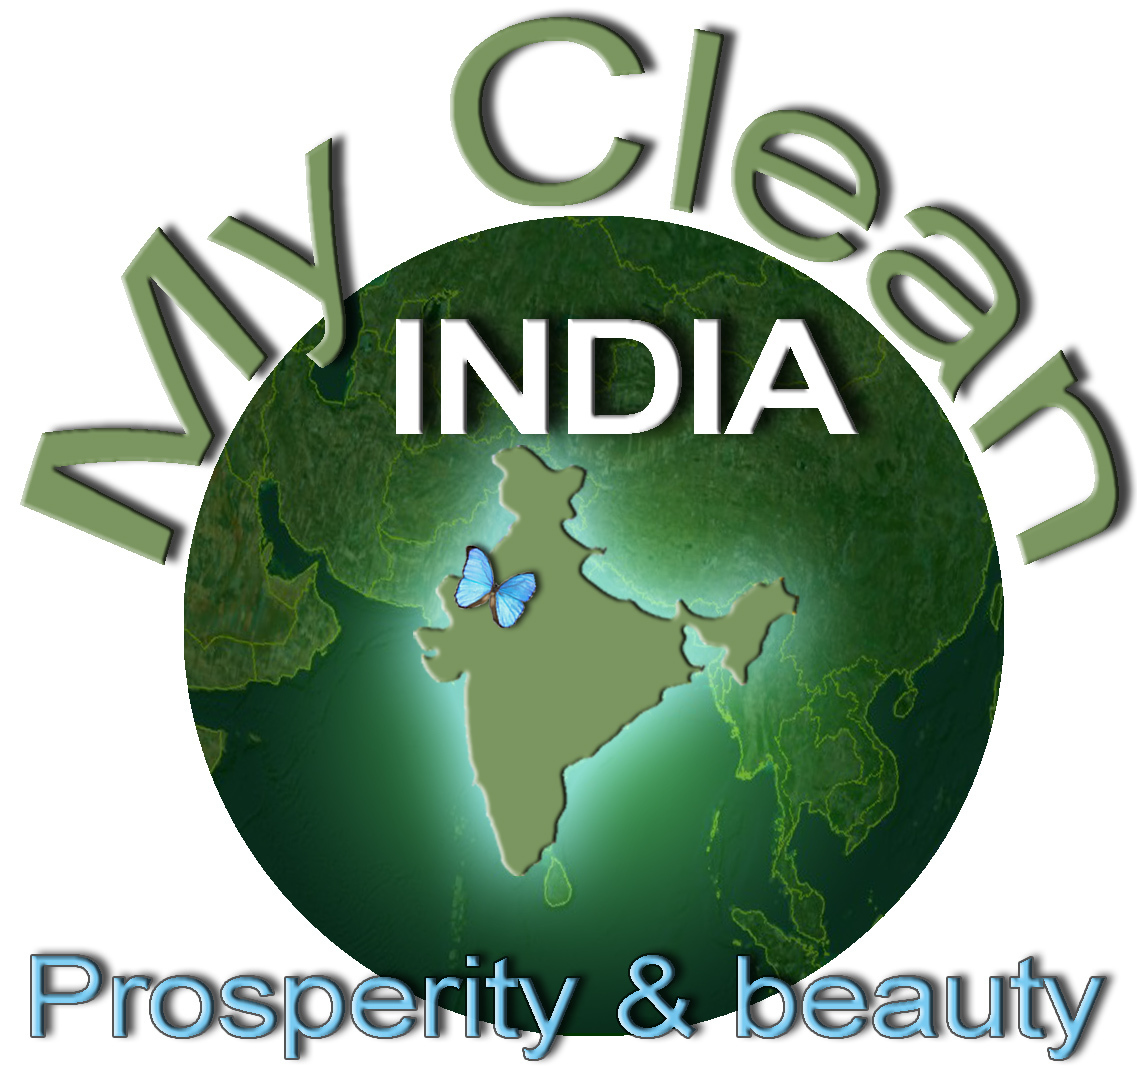 clean india for a green india essay Searches related to paragraph on swachh bharat abhiyan essay on swachh bharat in english in 200 words, importance of swachh bharat abhiyan in english, swachh bharat abhiyan slogans, clean india green india essay, clean india essay wikipedia, report on swachh bharat abhiyan in schools.